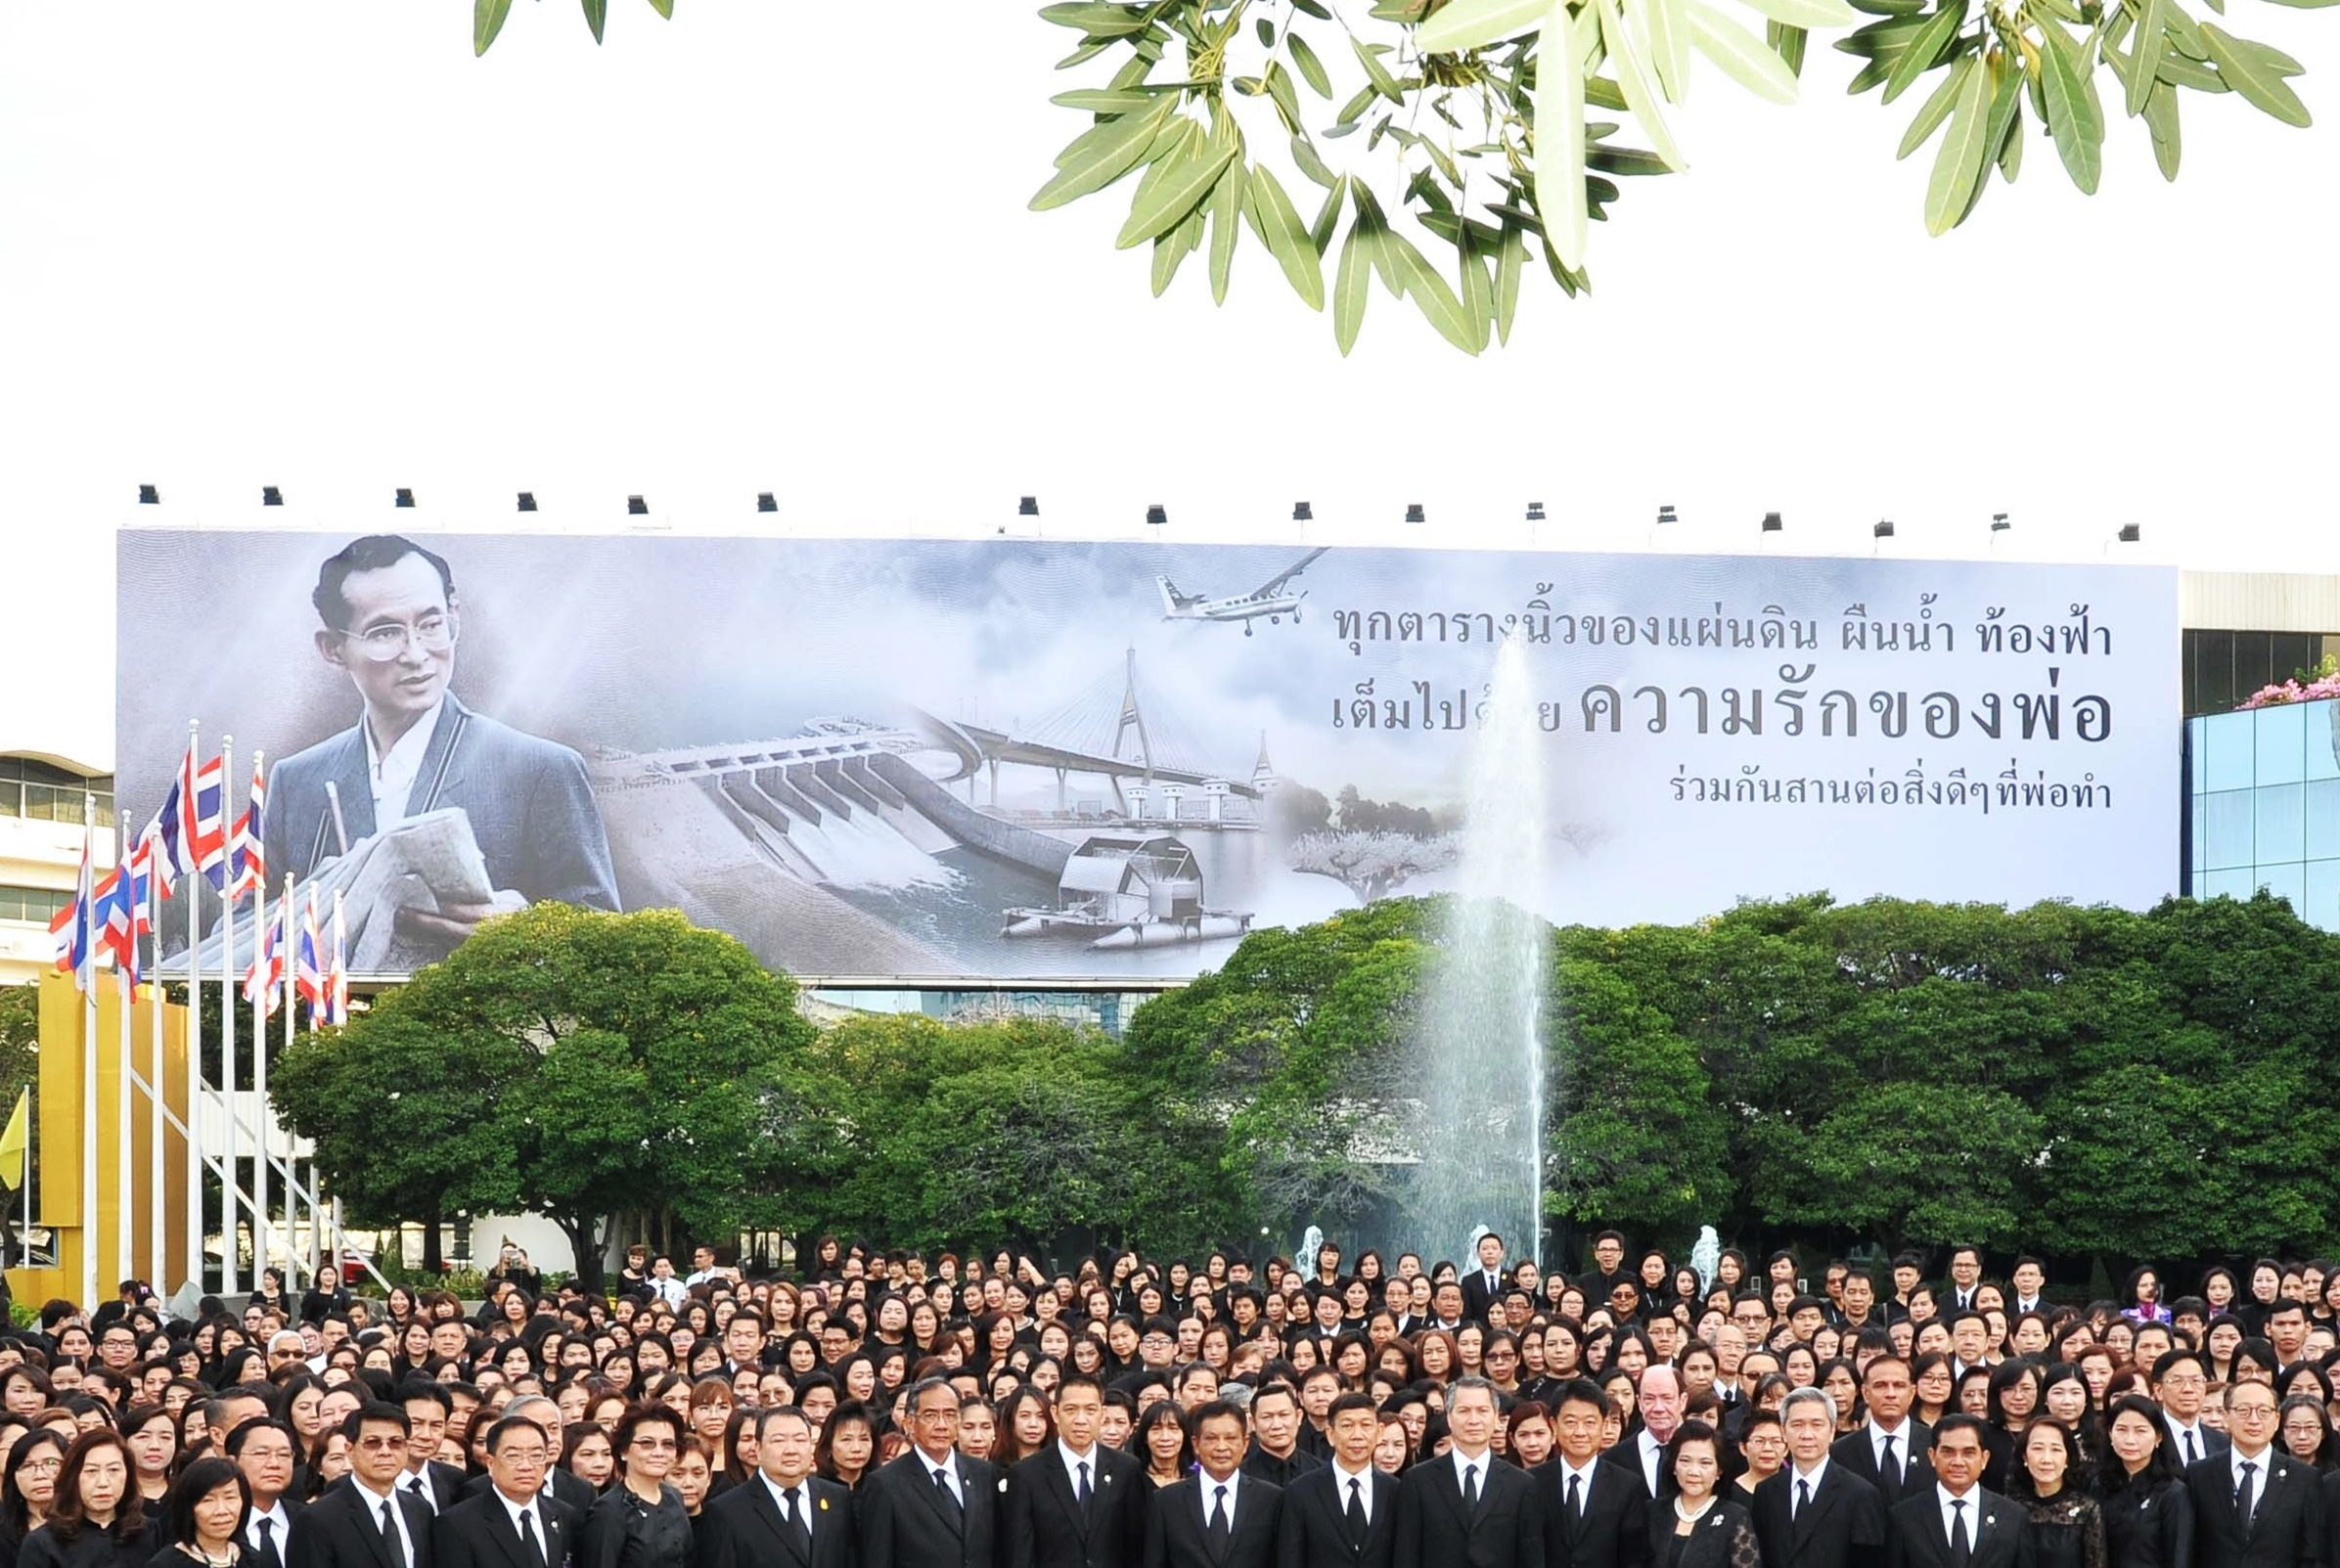 tg137_thai_joins_country_in_making_loyalty_oath